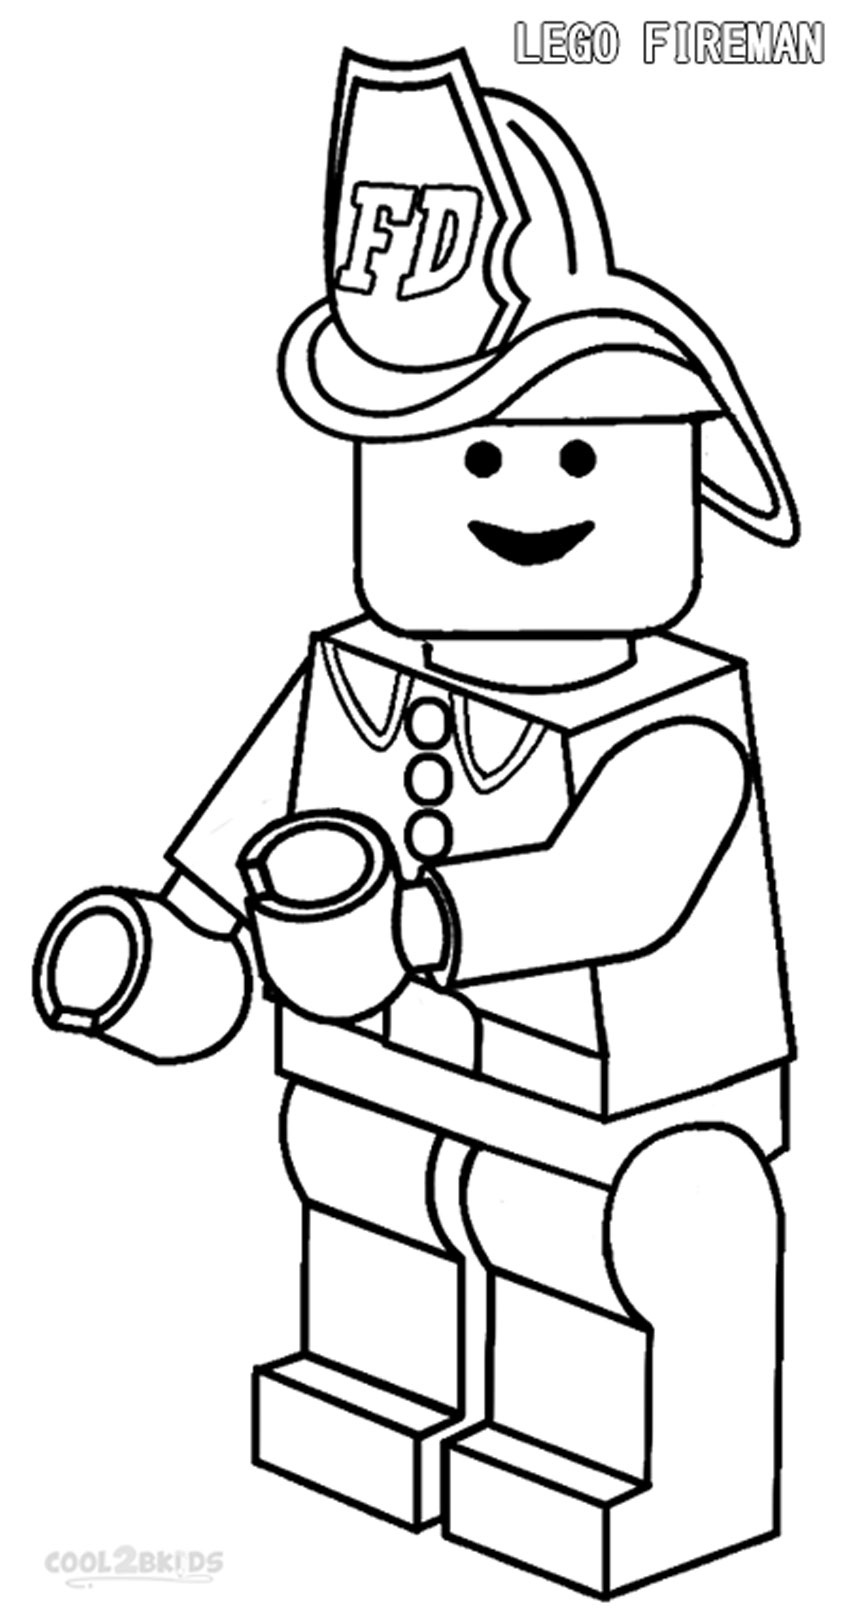 Lego clipart firefighter Pages coloring Fireman coloring adult